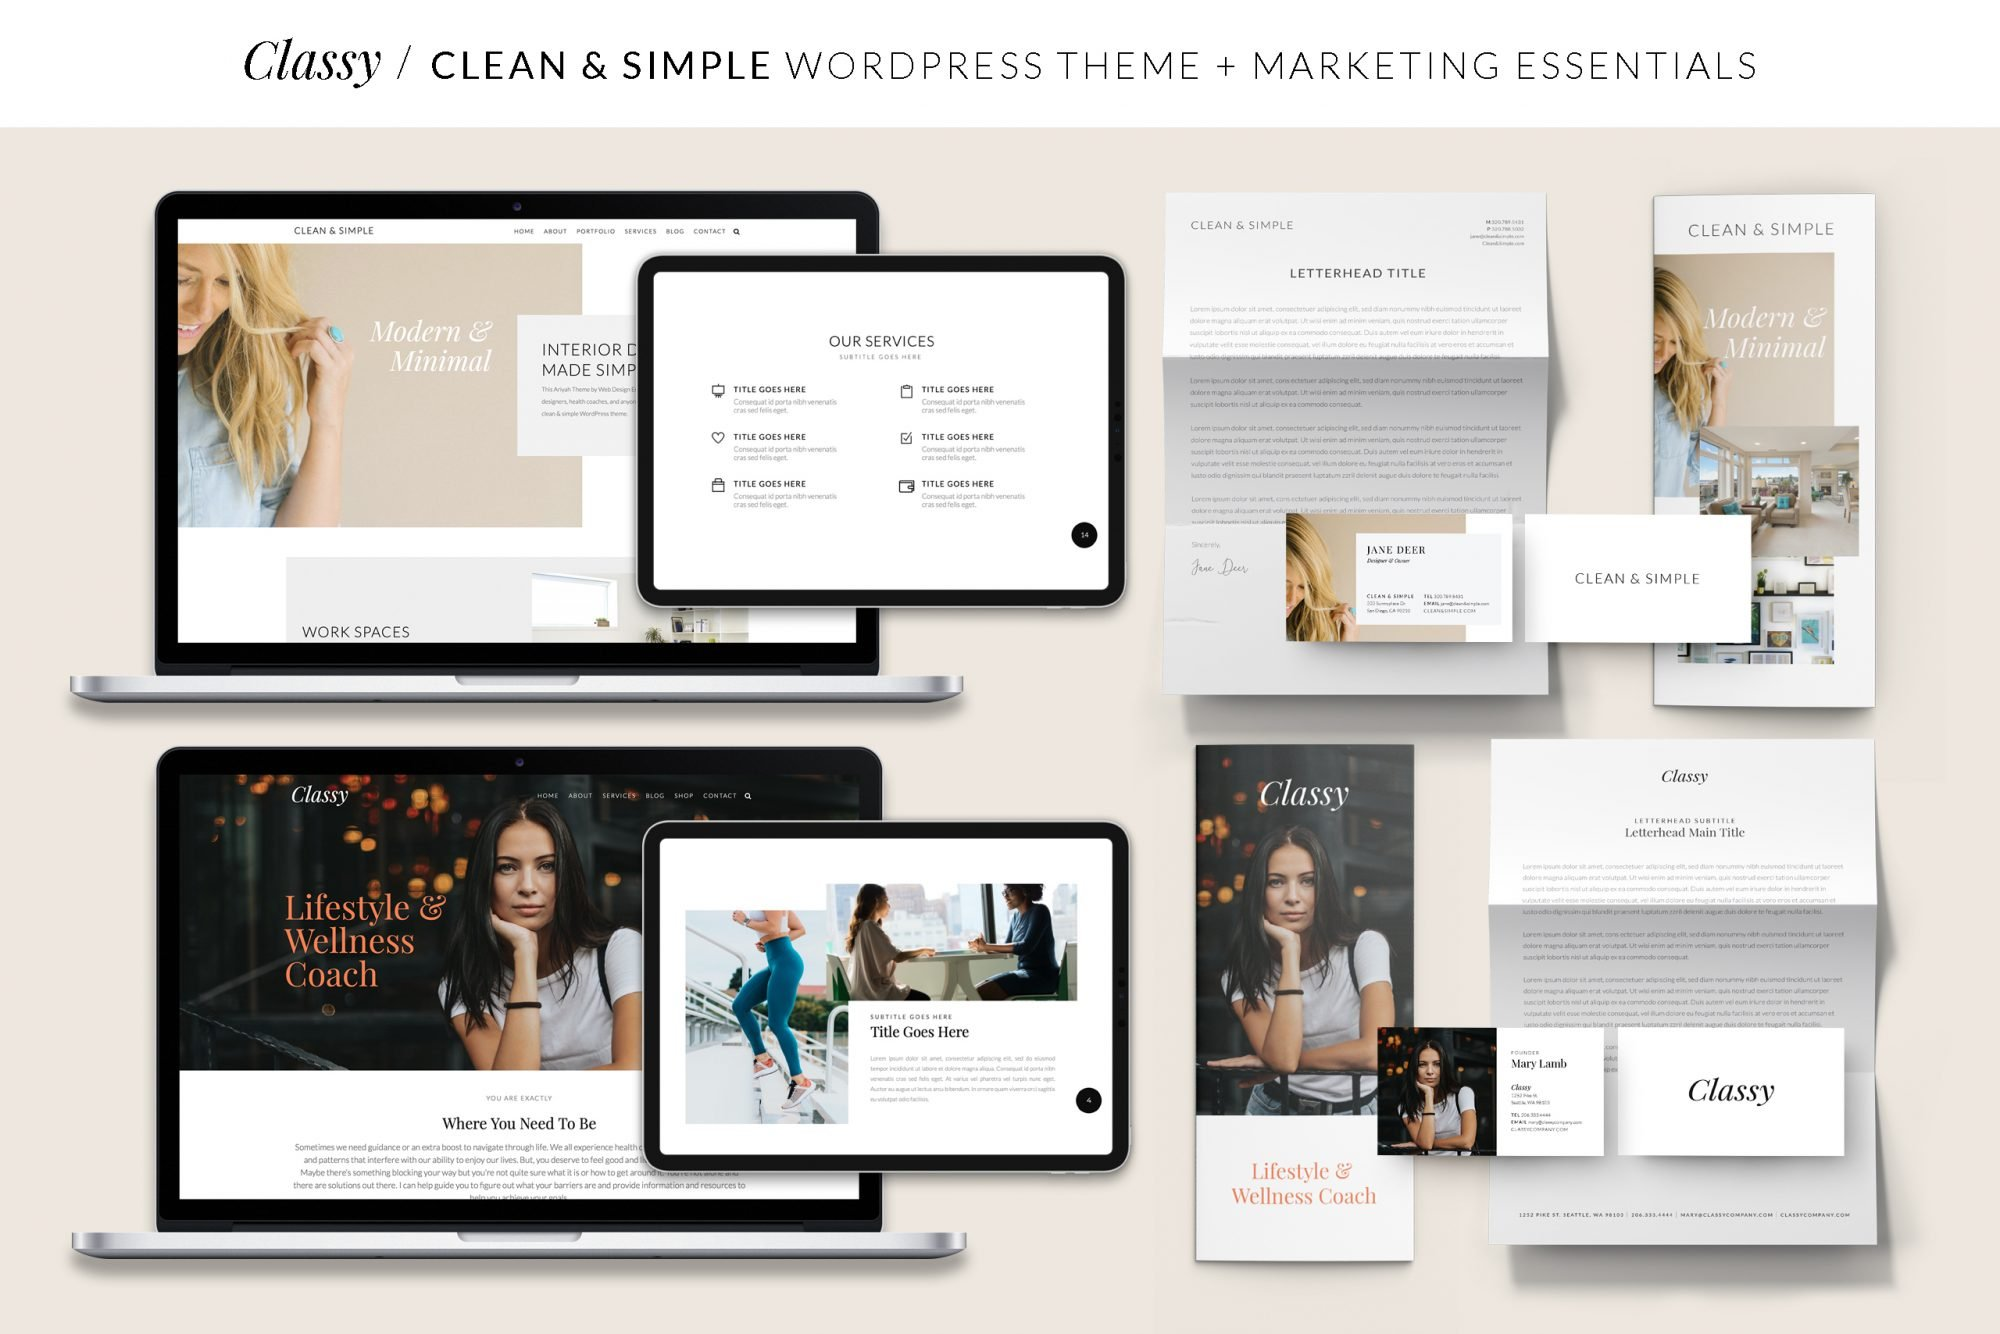 Ariyah Website and Marketing Essentials Bundle